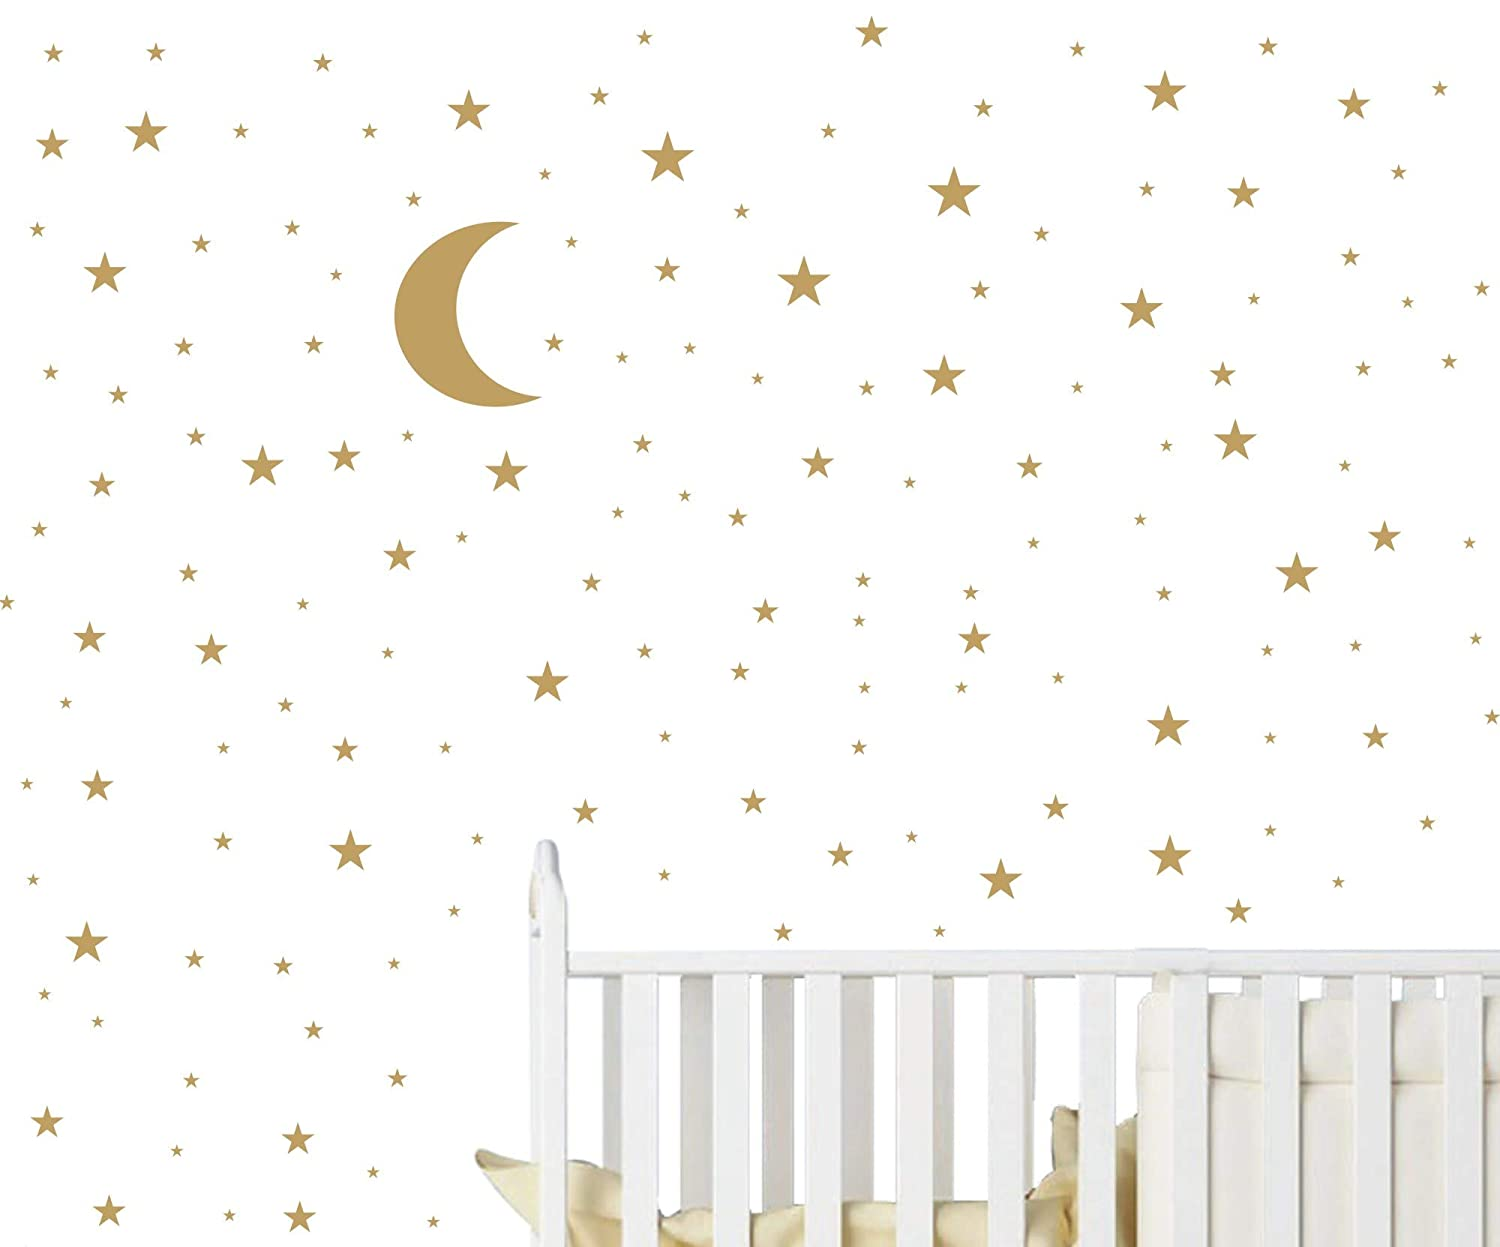 JOYRESIDE Moon and Stars Wall Decal Vinyl Sticker for Kids Boy Girls Baby Room Decoration Good Night Nursery Wall Decor Home House Bedroom Design YMX16 (Soft Pink) JURUOXIN